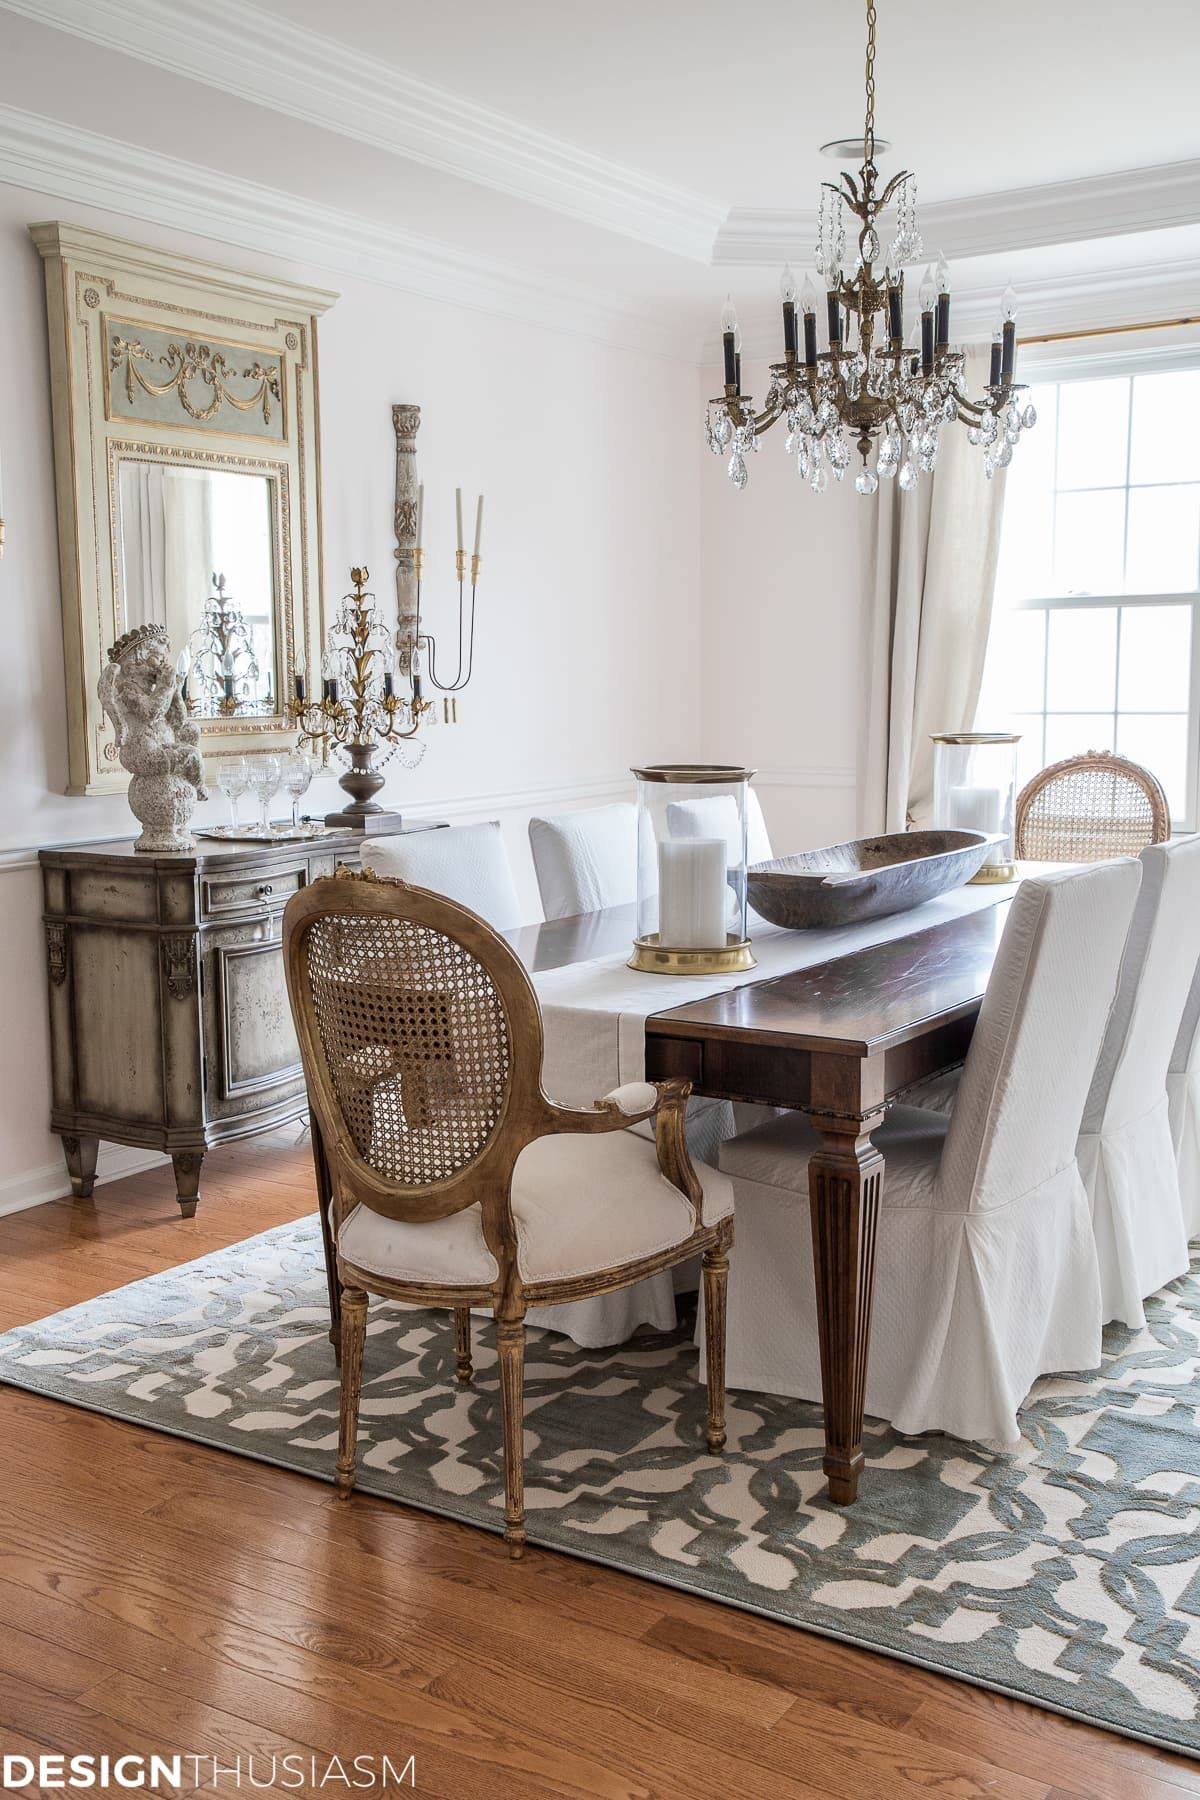 How To Decorate With Casual Elegance The Top 10 Posts Of 2018 Dining Room Cozy Dining Room Decor Dining Room French